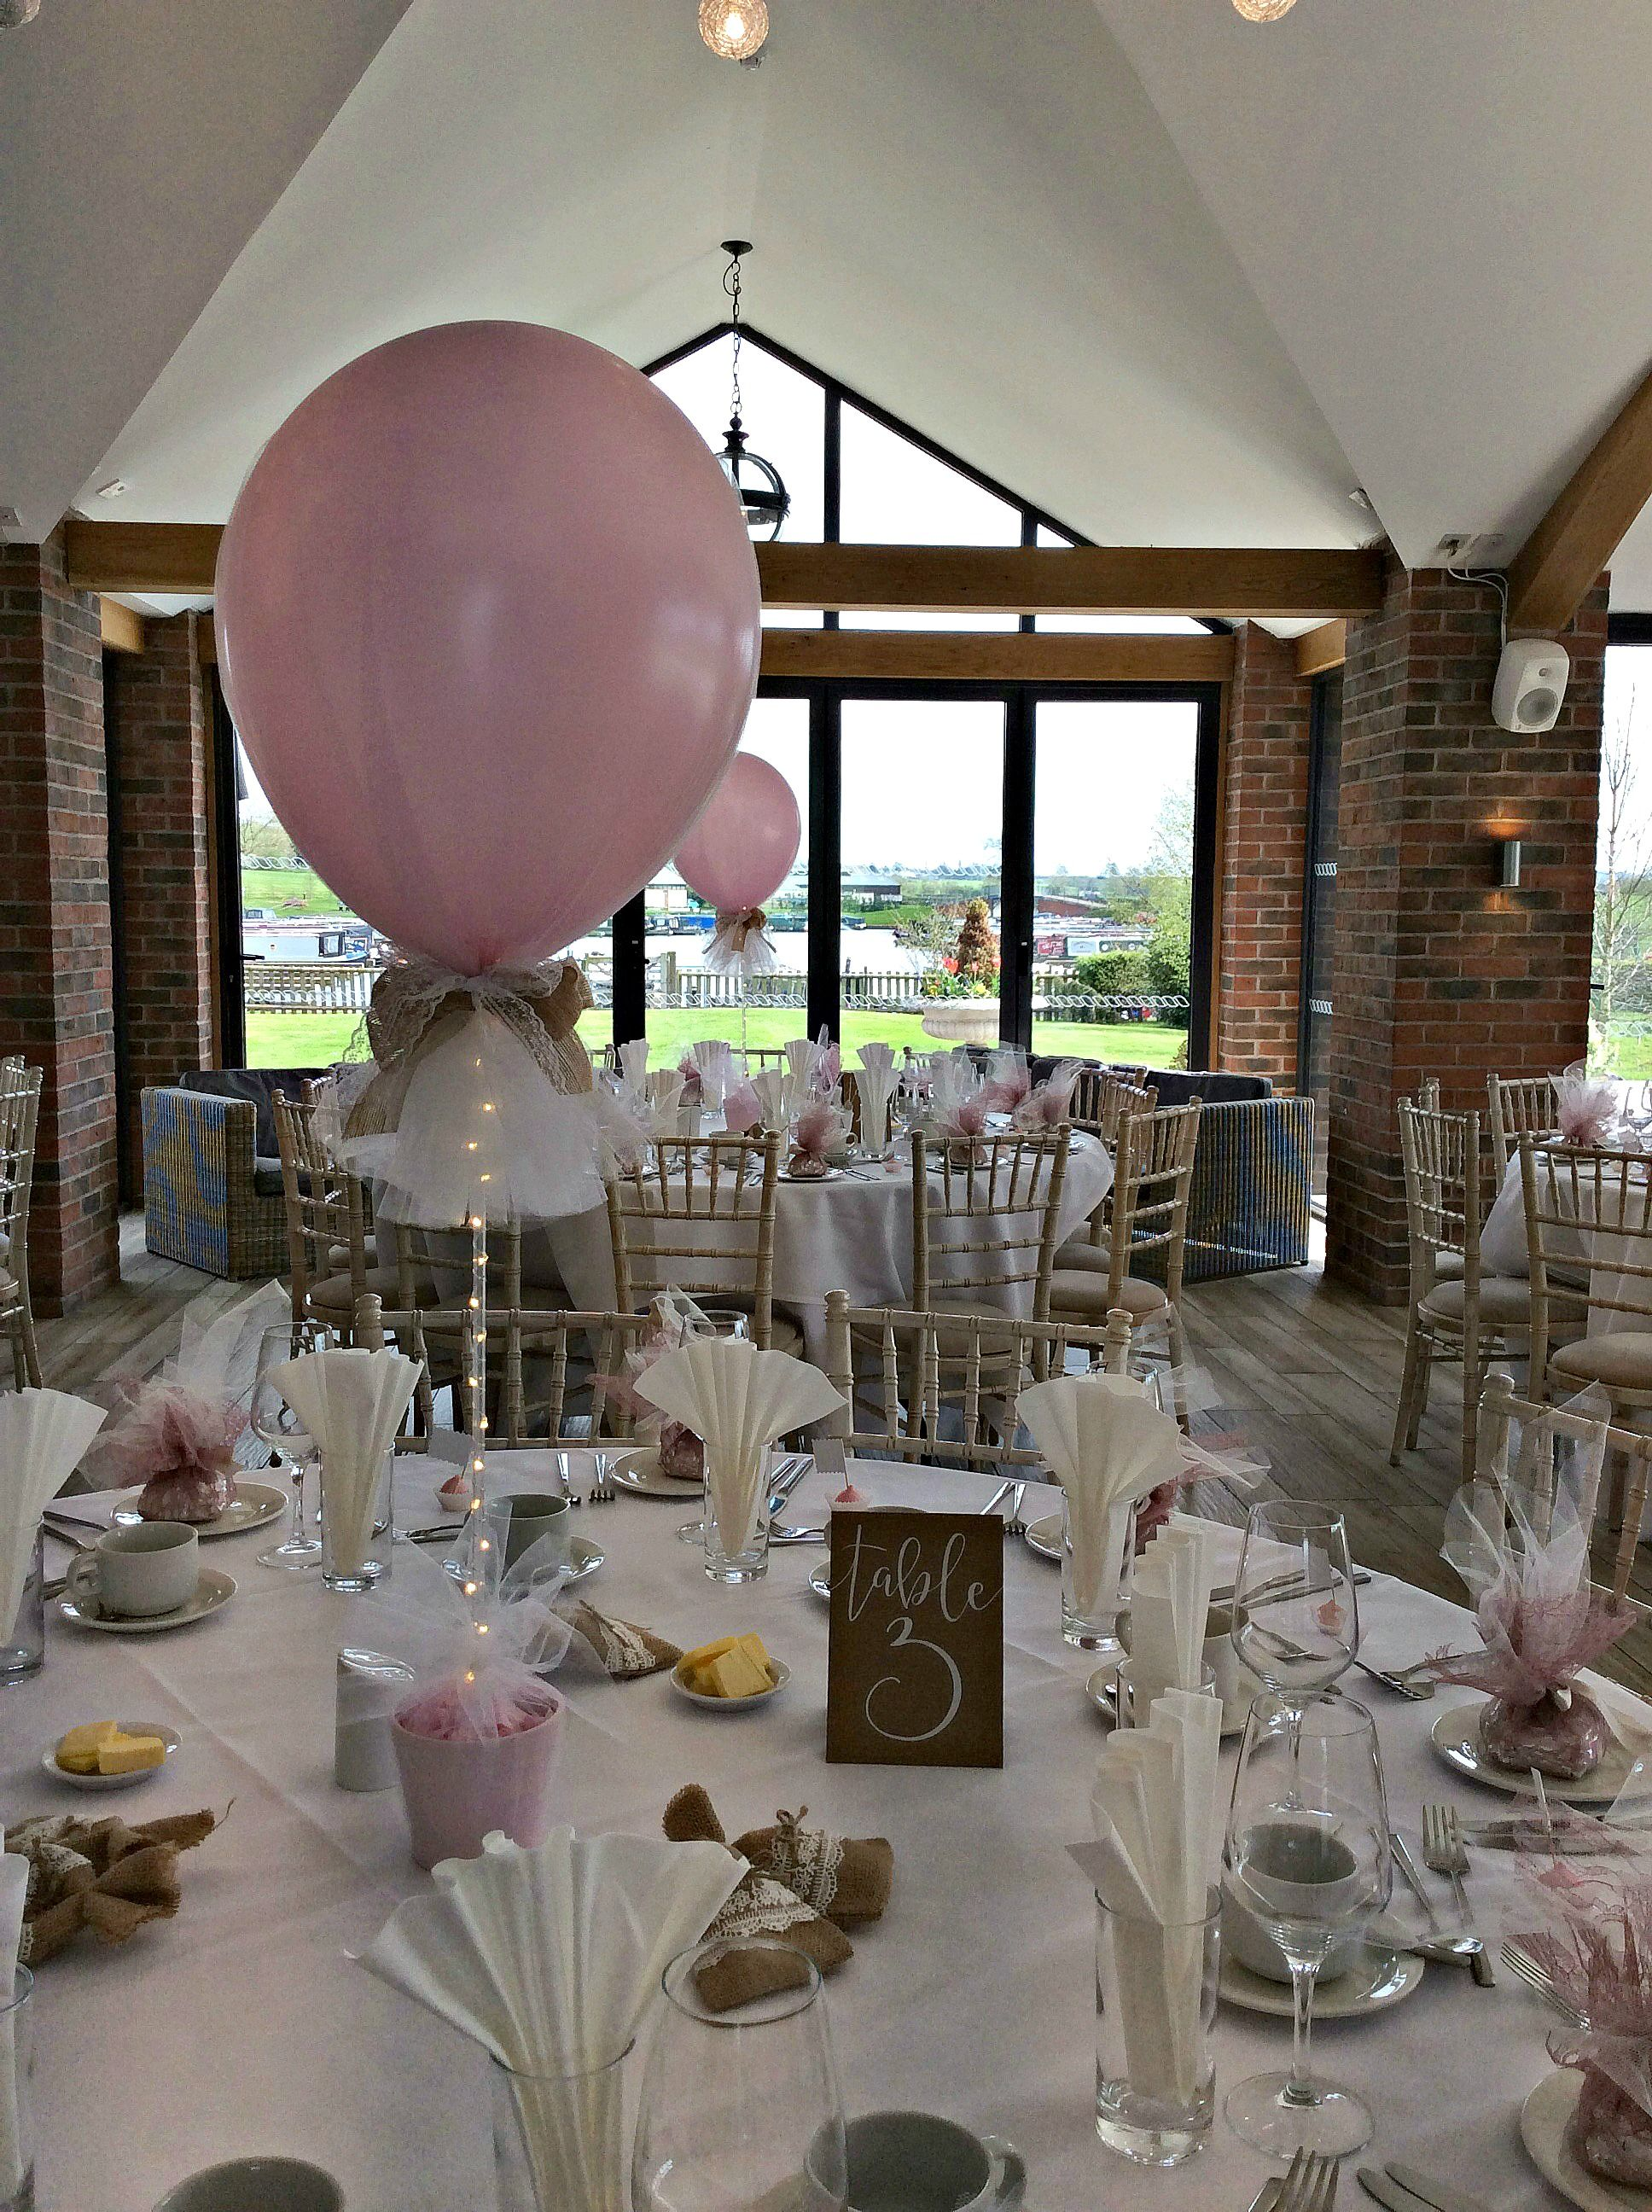 Wedding decorations tulle and lights  Tulle covered balloon centre pieces finished with hessian and lace